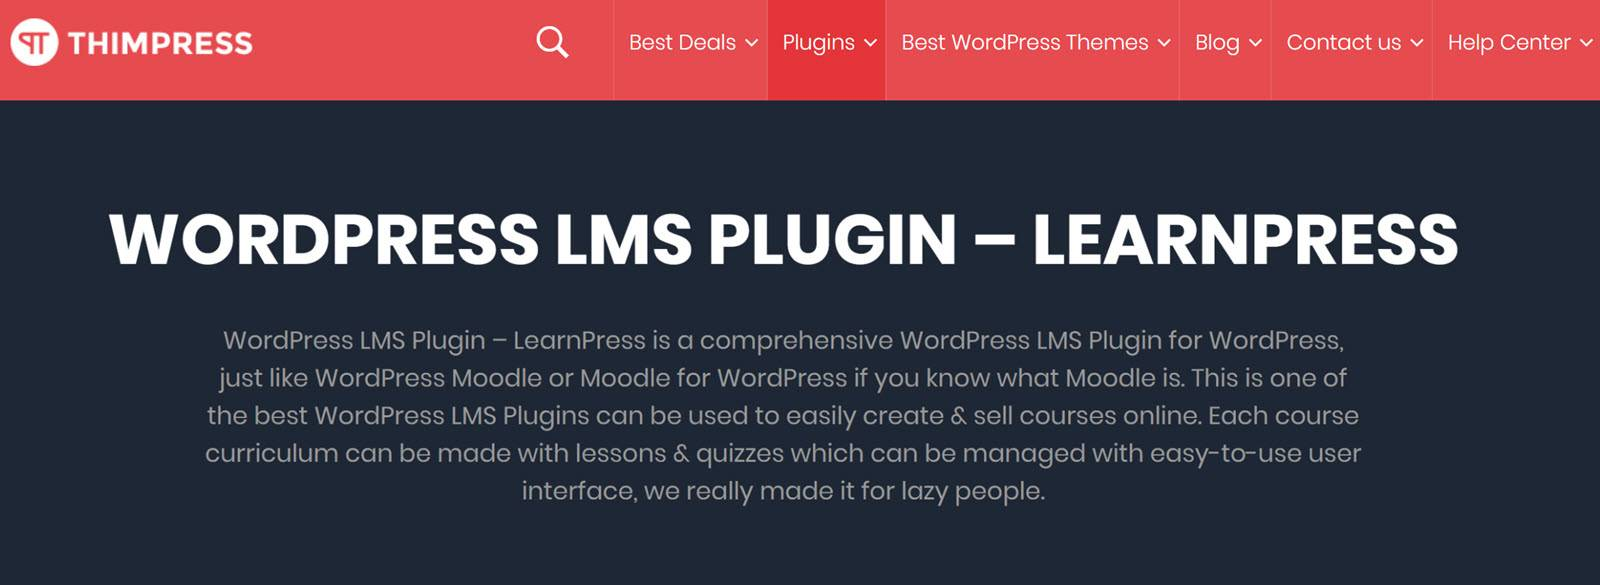 Best WordPress Plugins for Online Courses LearnPress